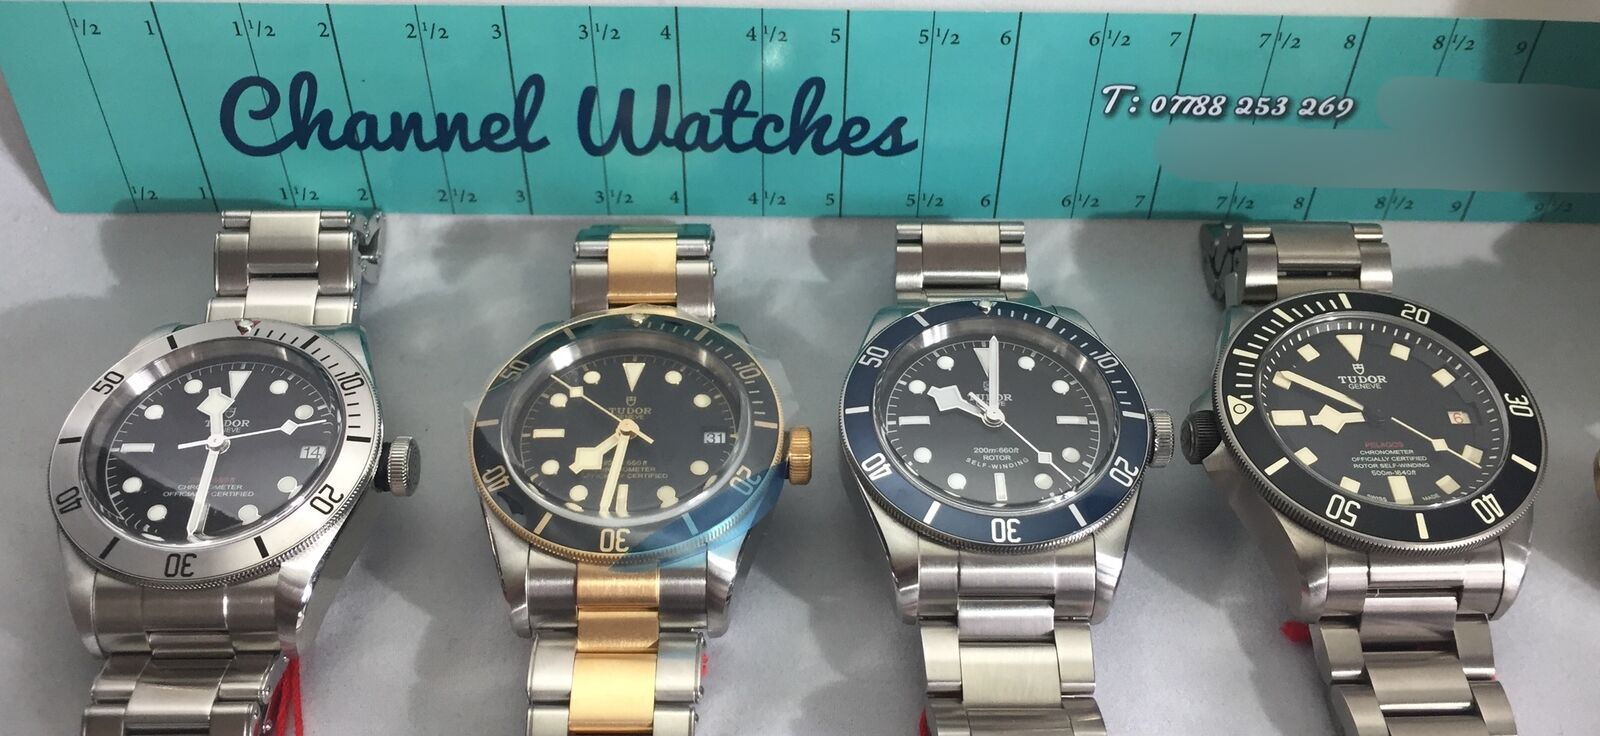 Channel-Watches Kent